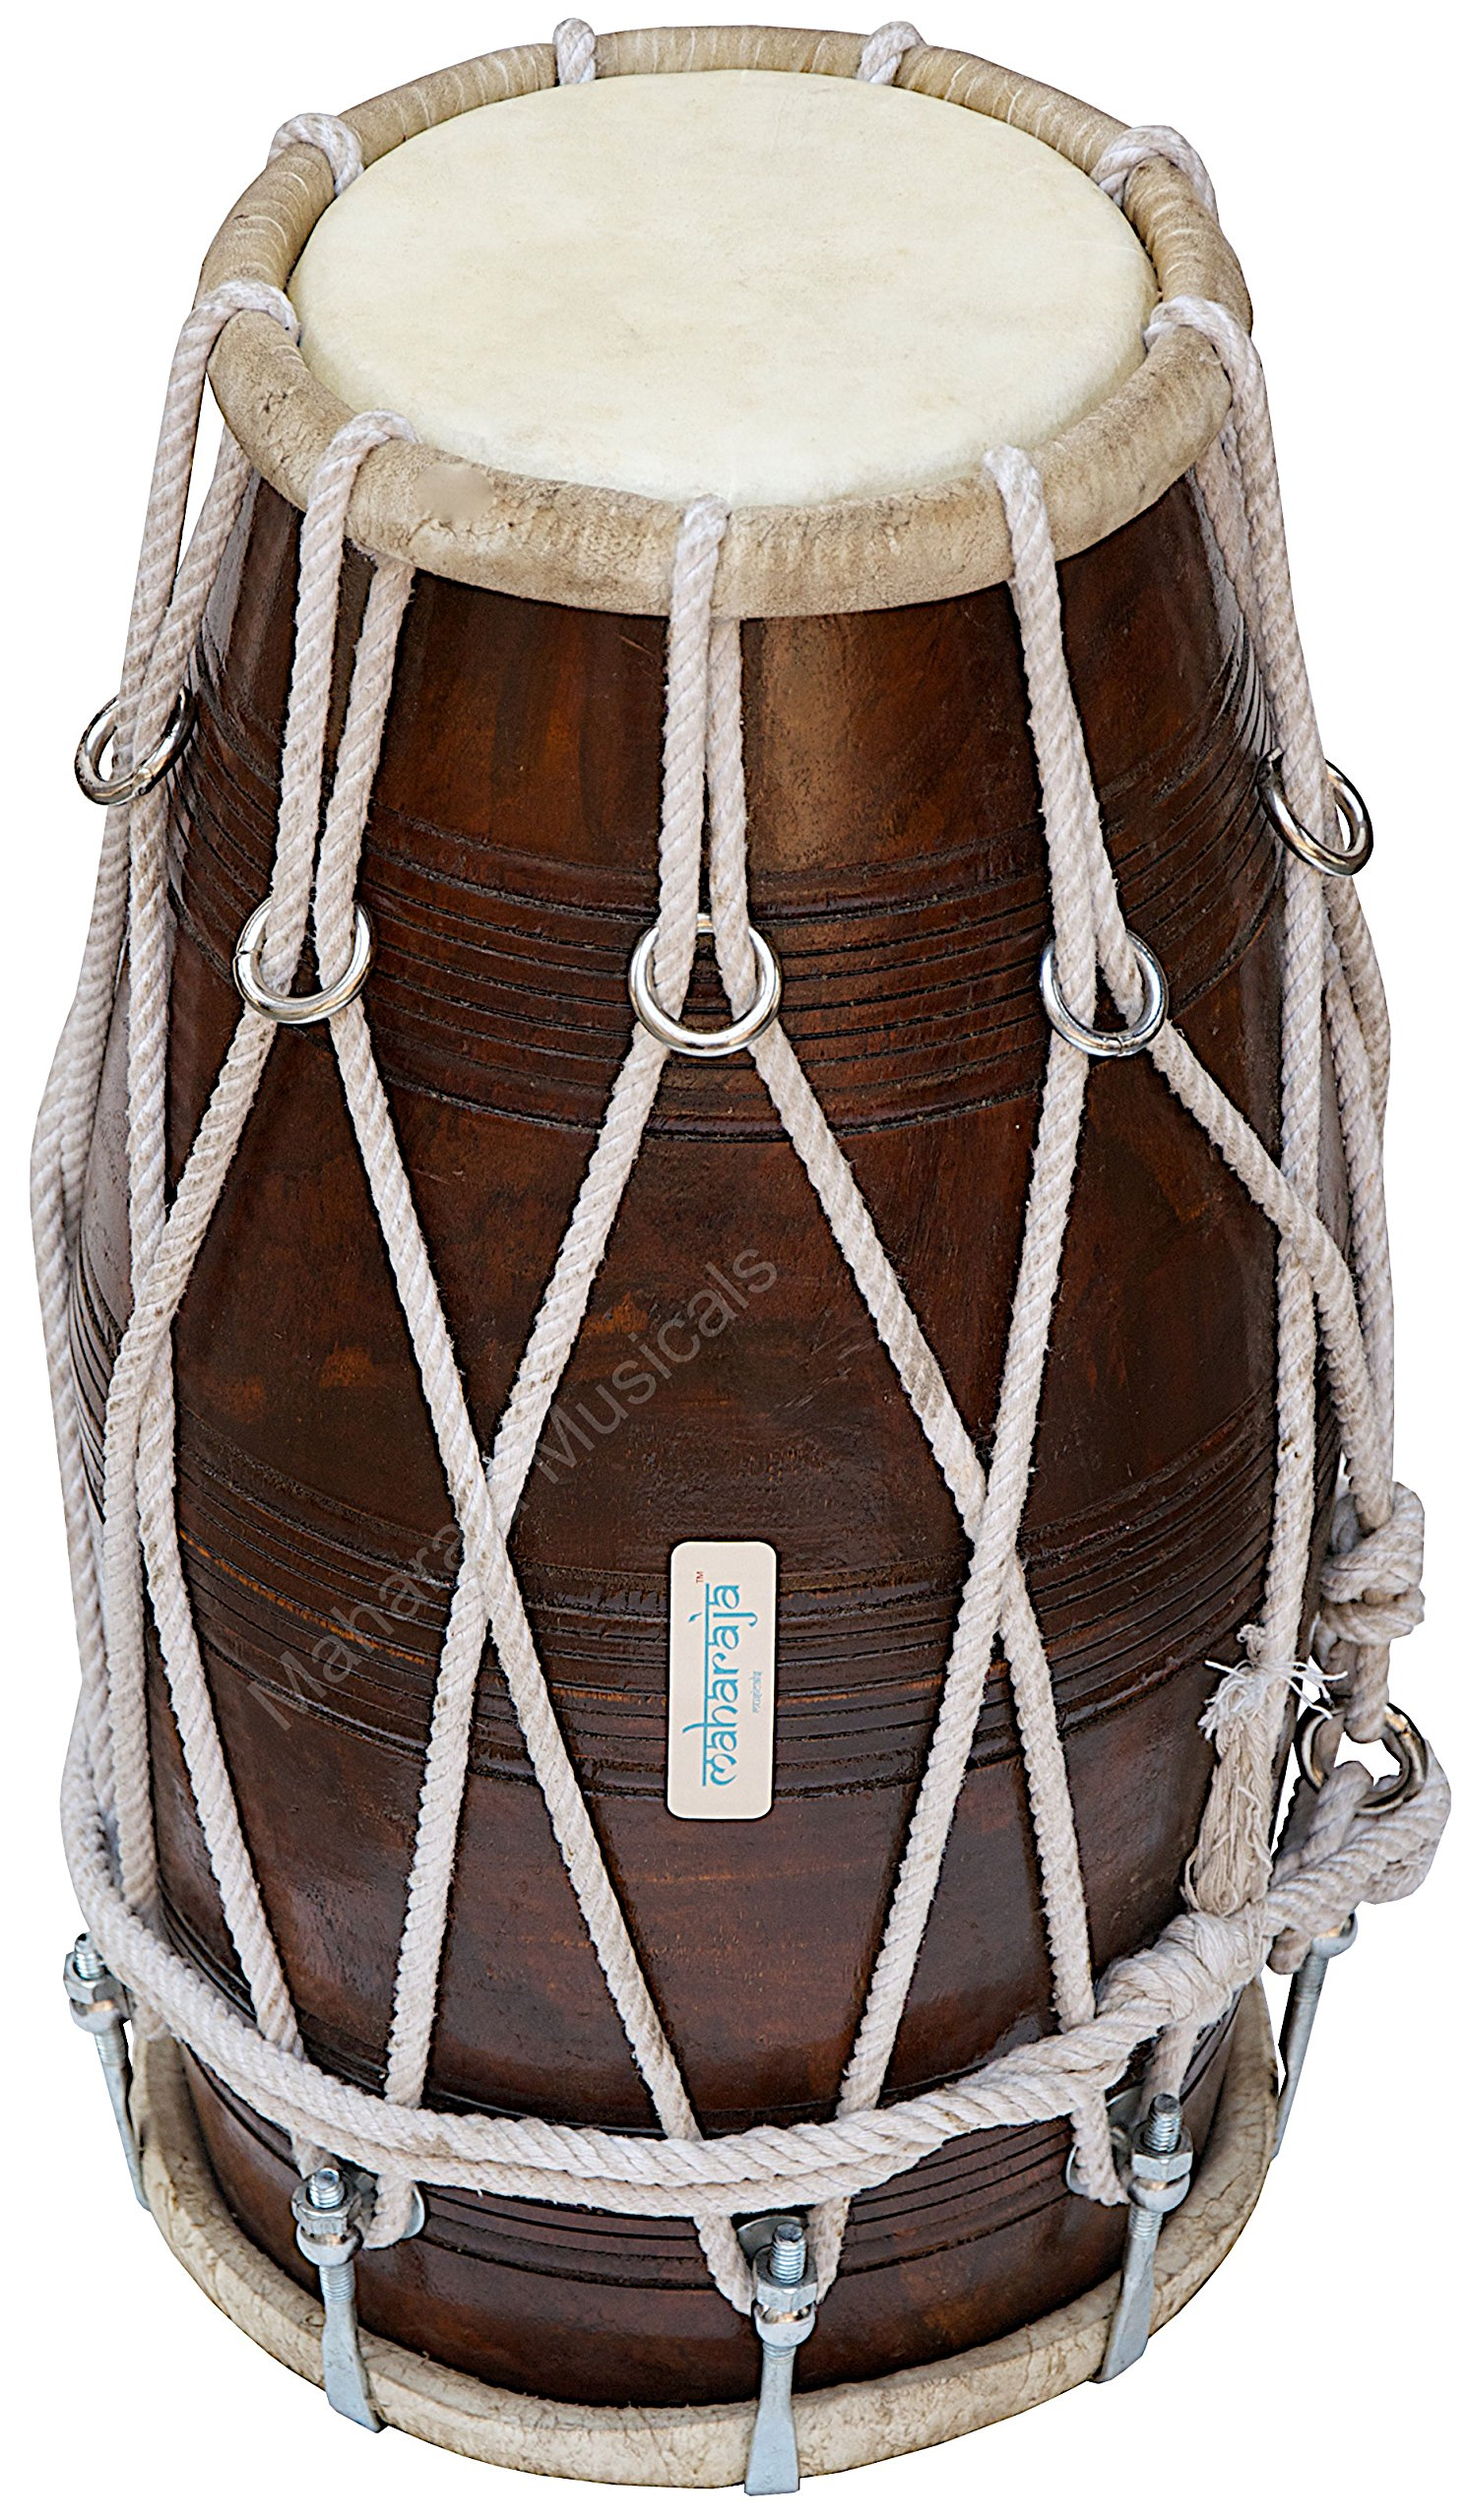 Special Dholak Drum by Maharaja Musicals, Professional Quality, Sheesham Wood, Padded Bag, Spanner, Dholki Musicals Instrument (PDI-BBC) by Maharaja Musicals (Image #3)